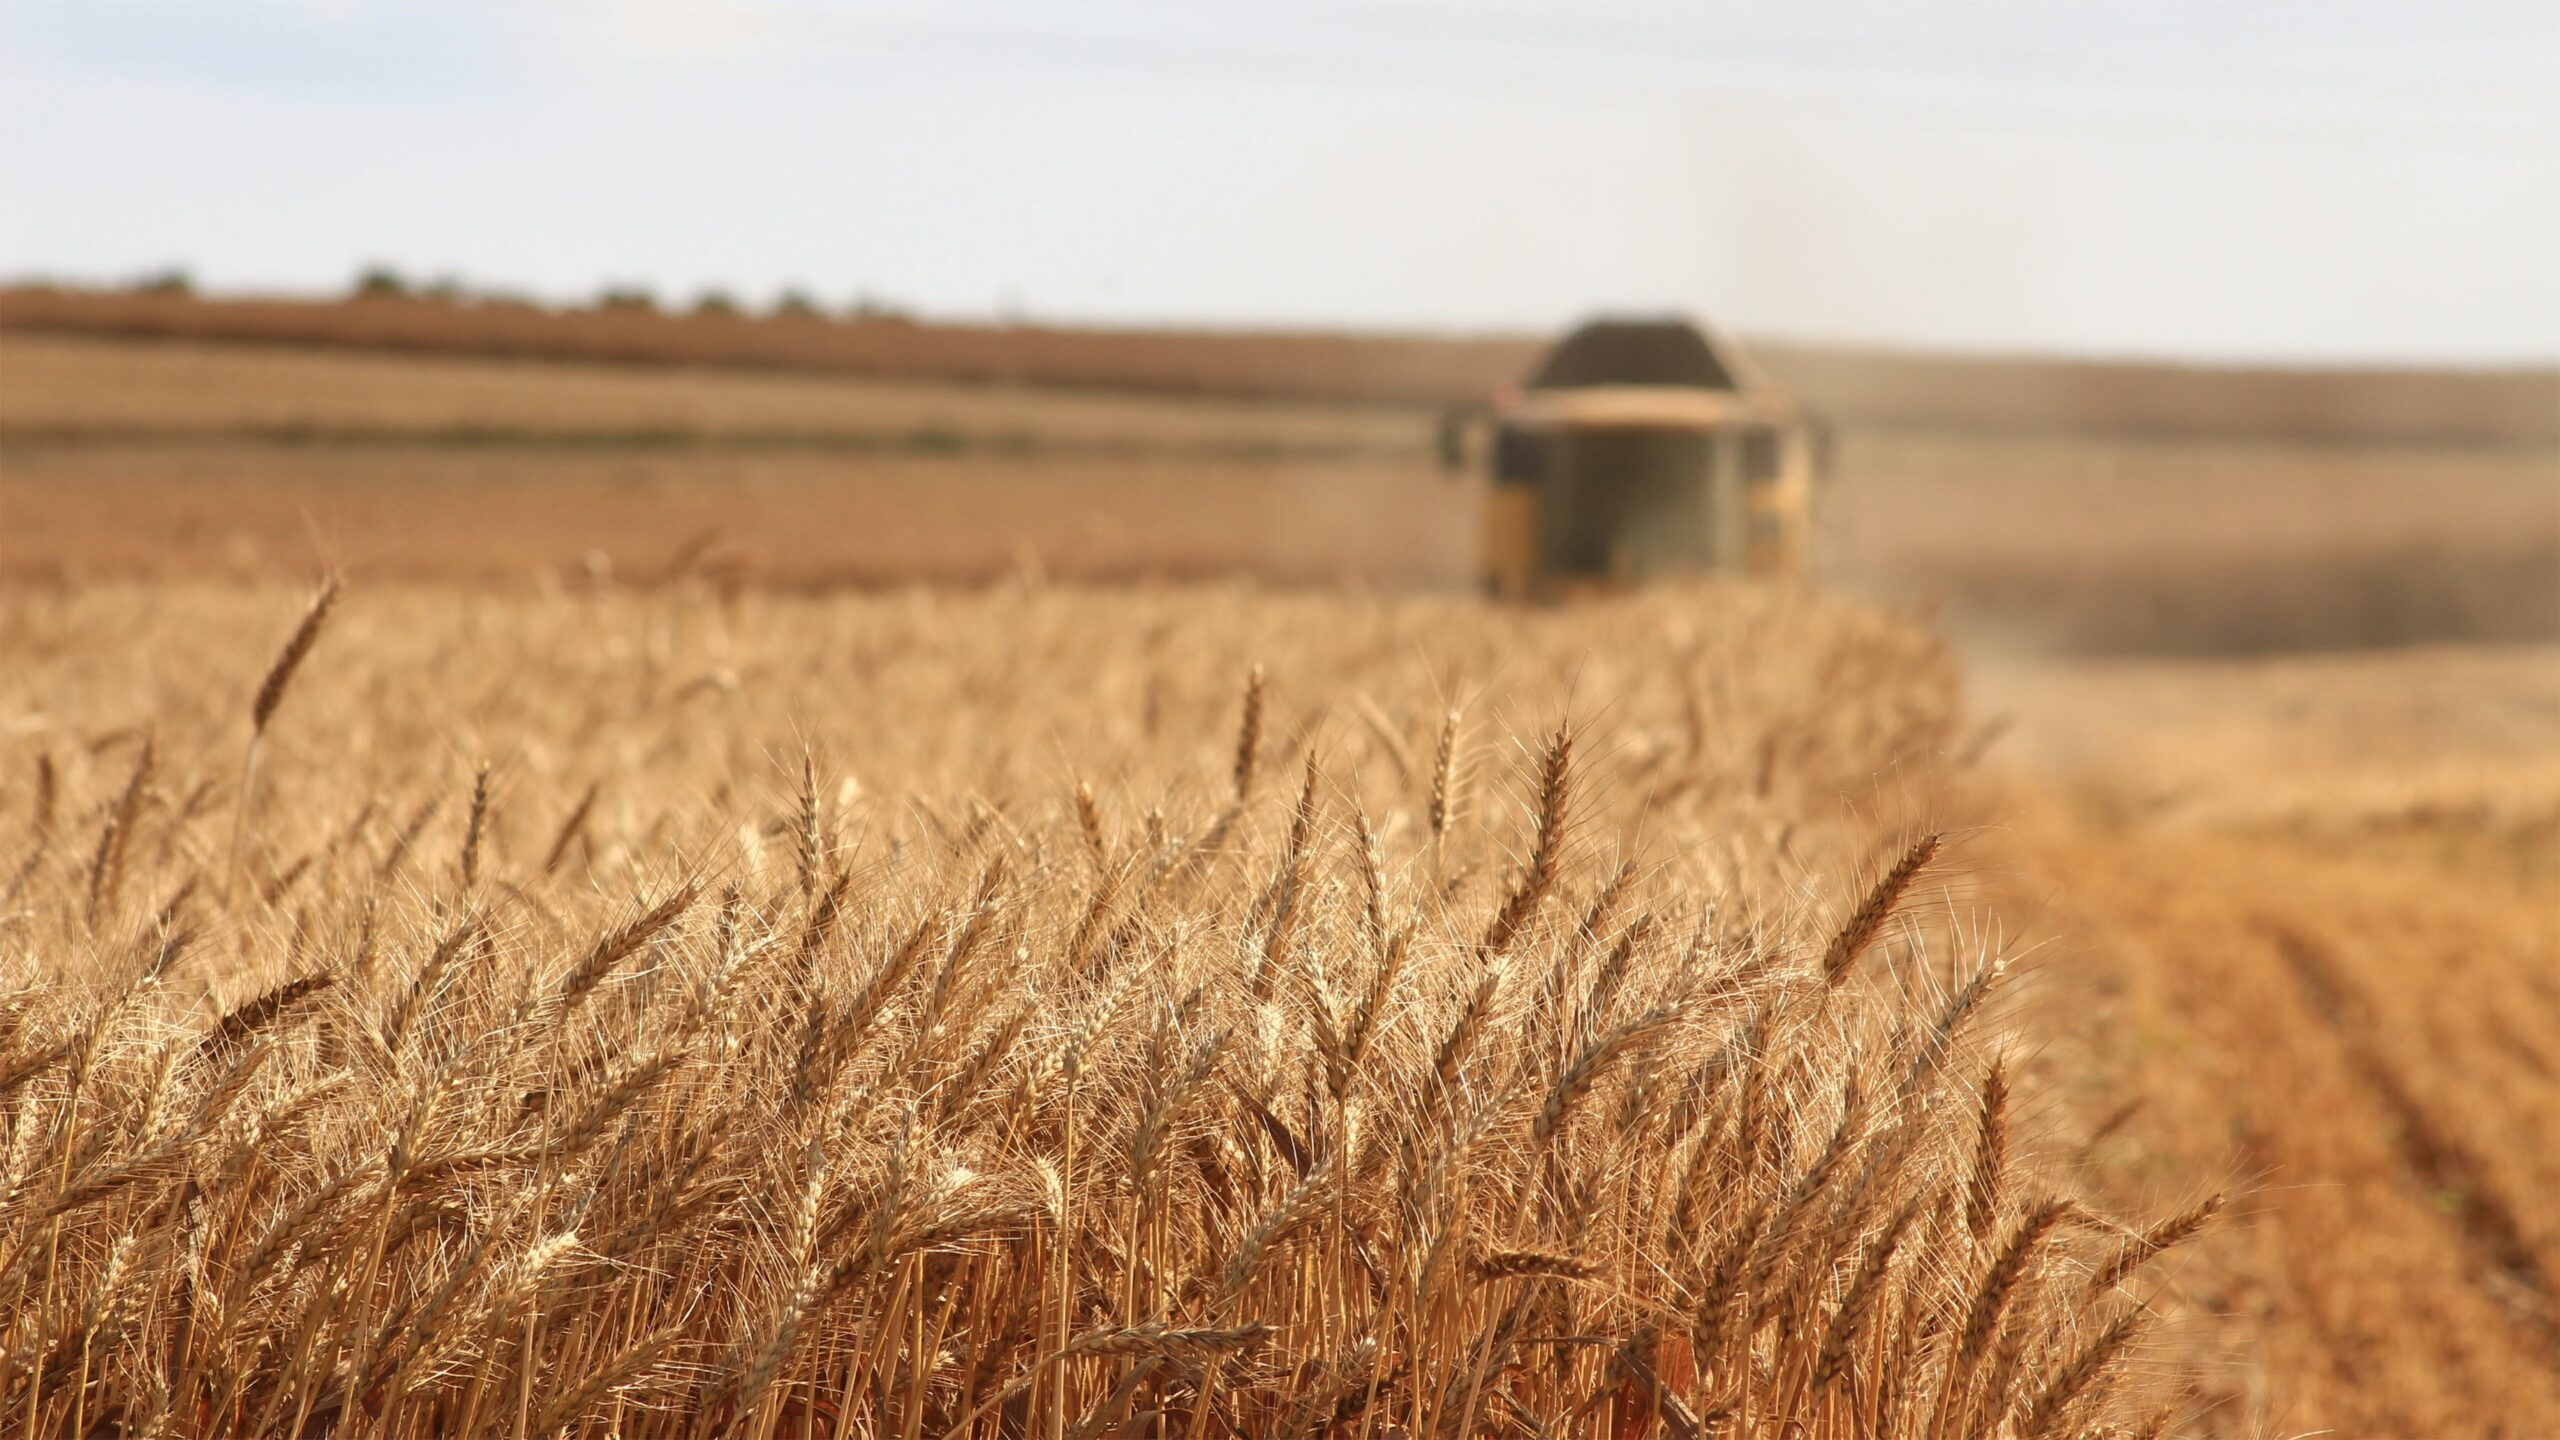 Close up shot of crop field with machinery in the background